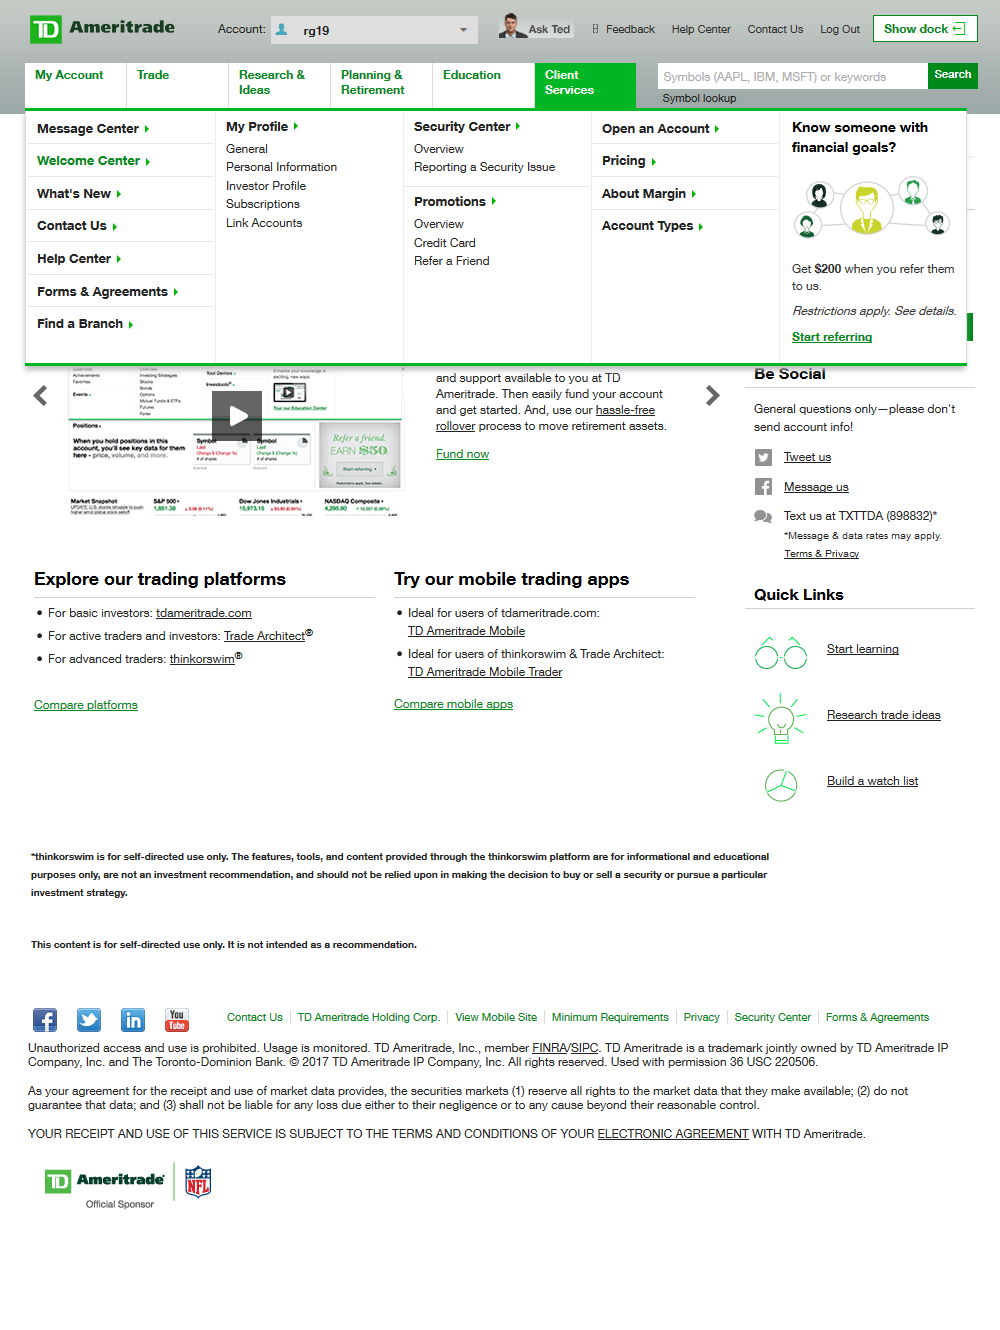 overview of client services and customer support on a TD Ameritrade brokerage account